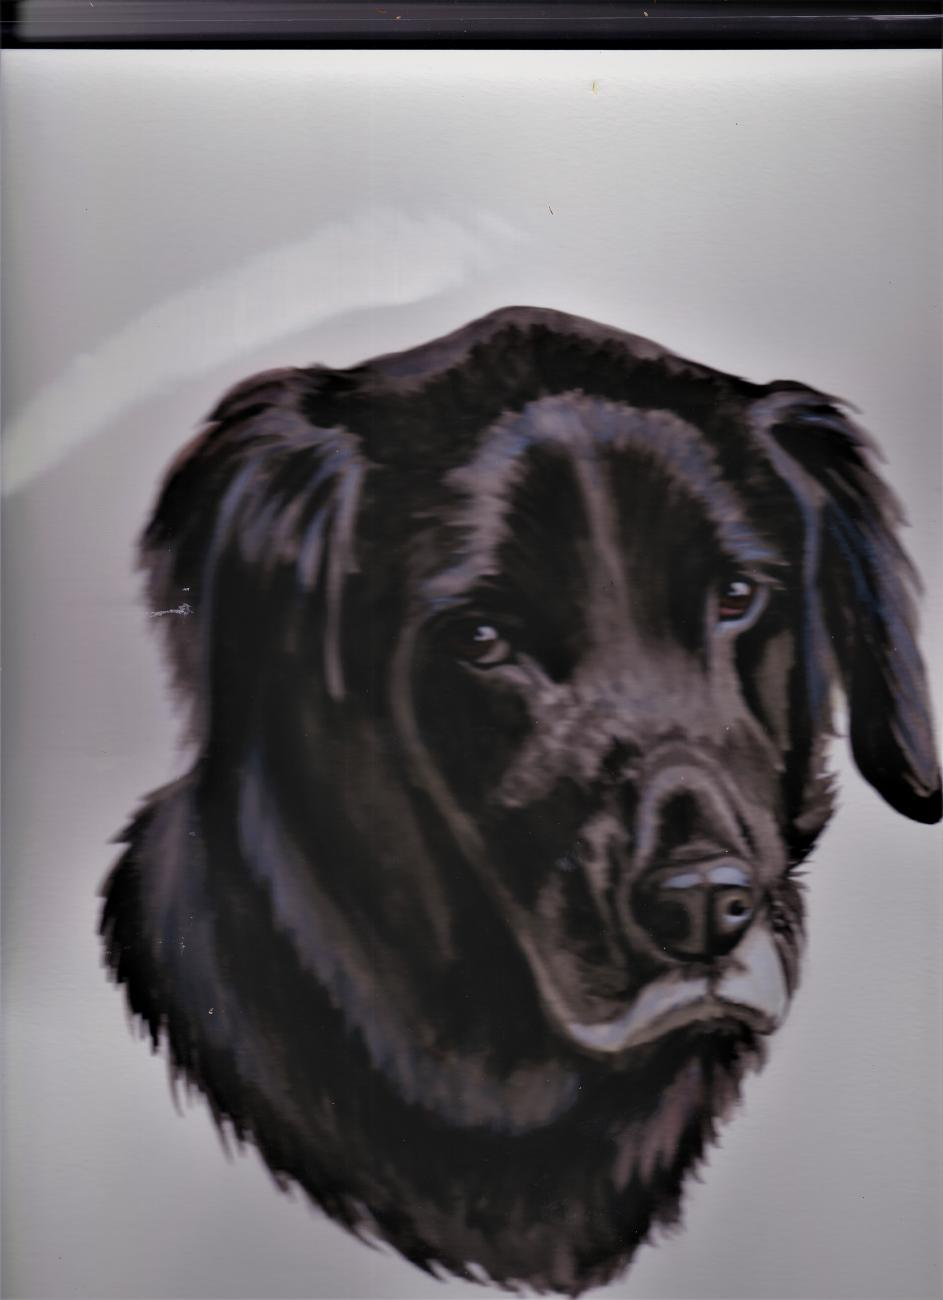 Max Yeager profile image 1